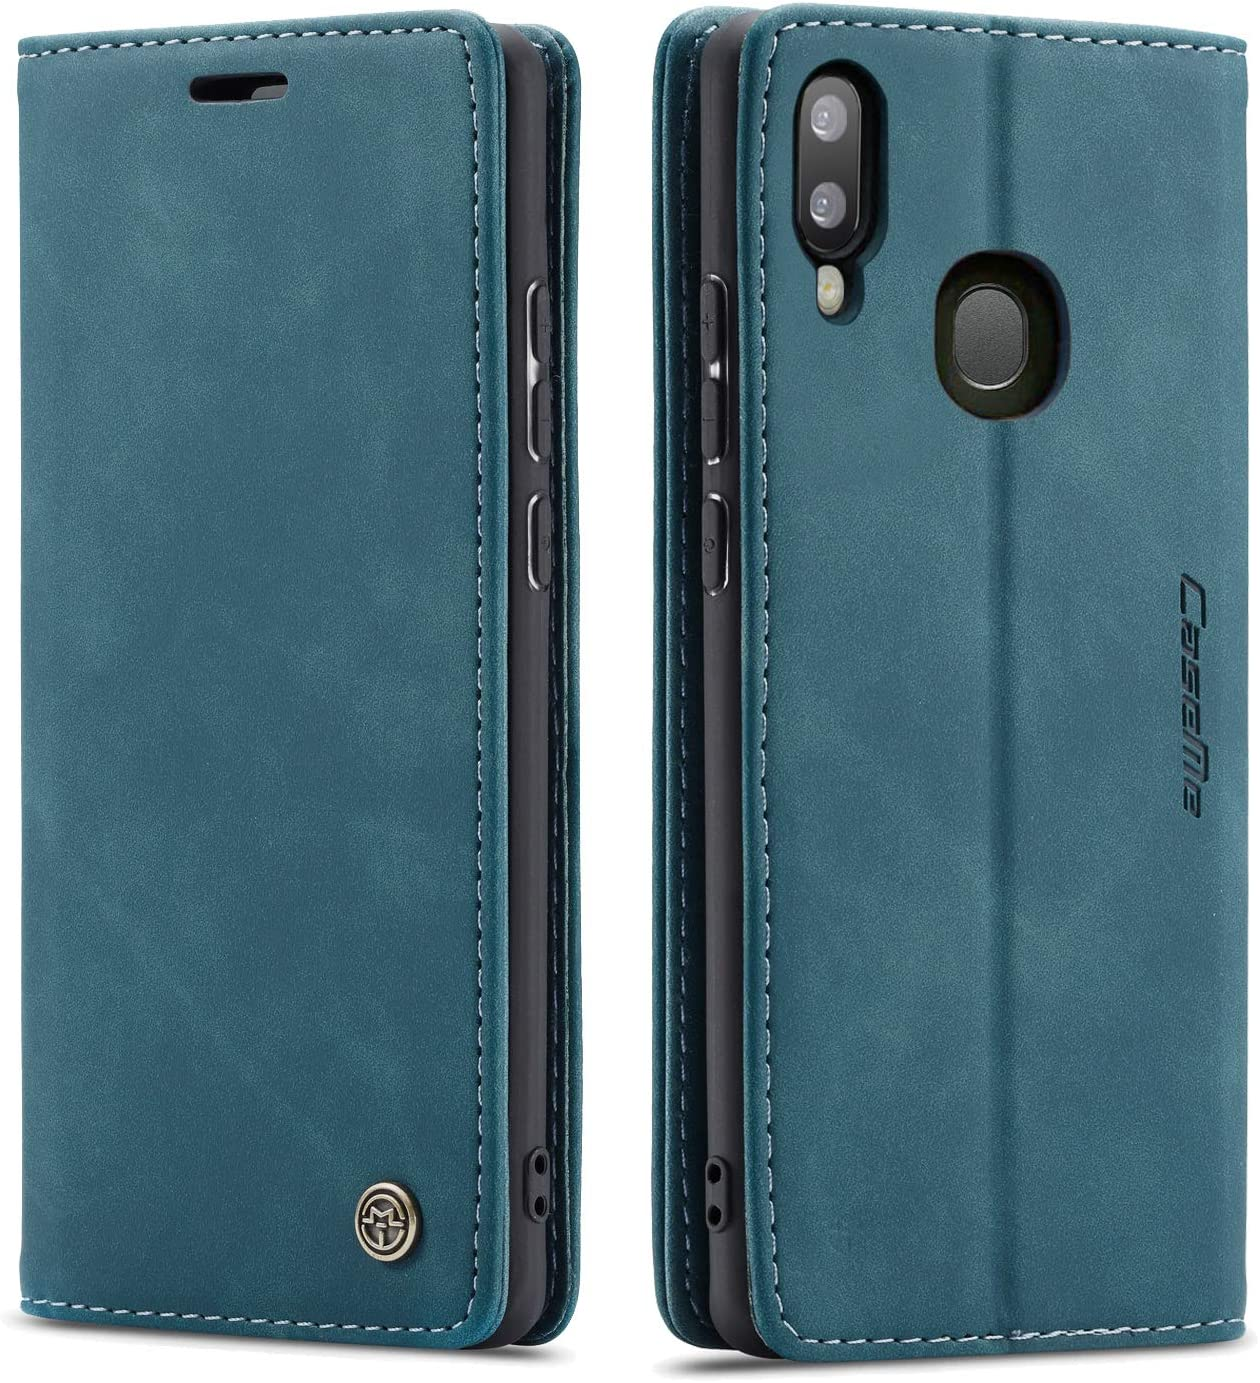 Galaxy A20 Case,Galaxy A30 Case,Bpowe Leather Wallet Case Classic Design with Card Slot and Magnetic Closure Flip Fold Case for Samsung Galaxy A20/Galaxy A30 (Blue)